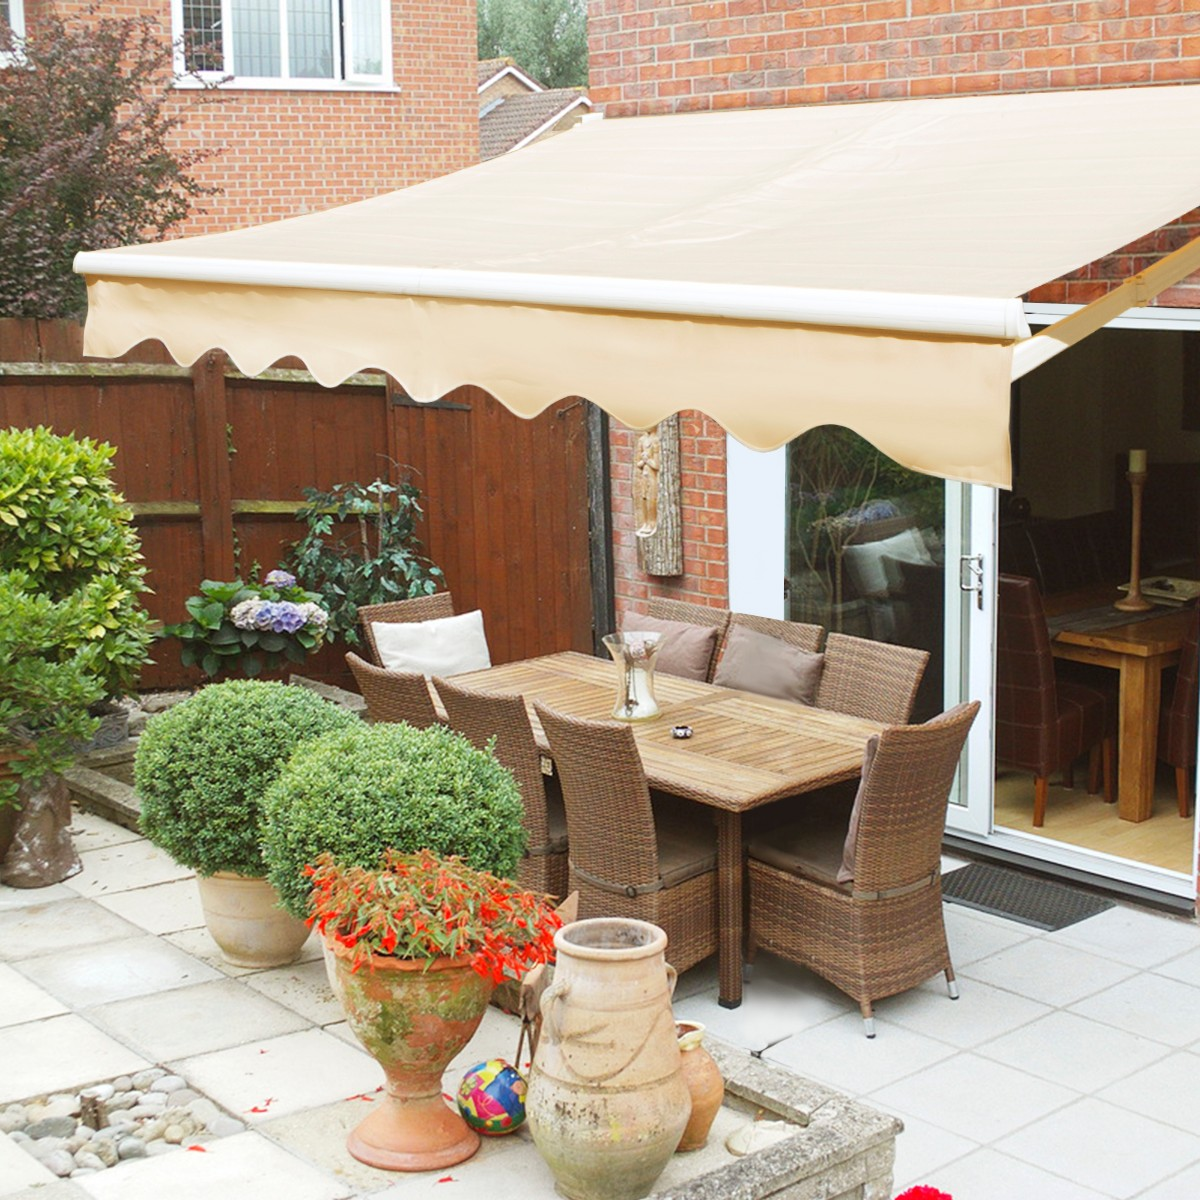 12 X10 Manual Retractable Patio Awning Outdoor Sun Shade